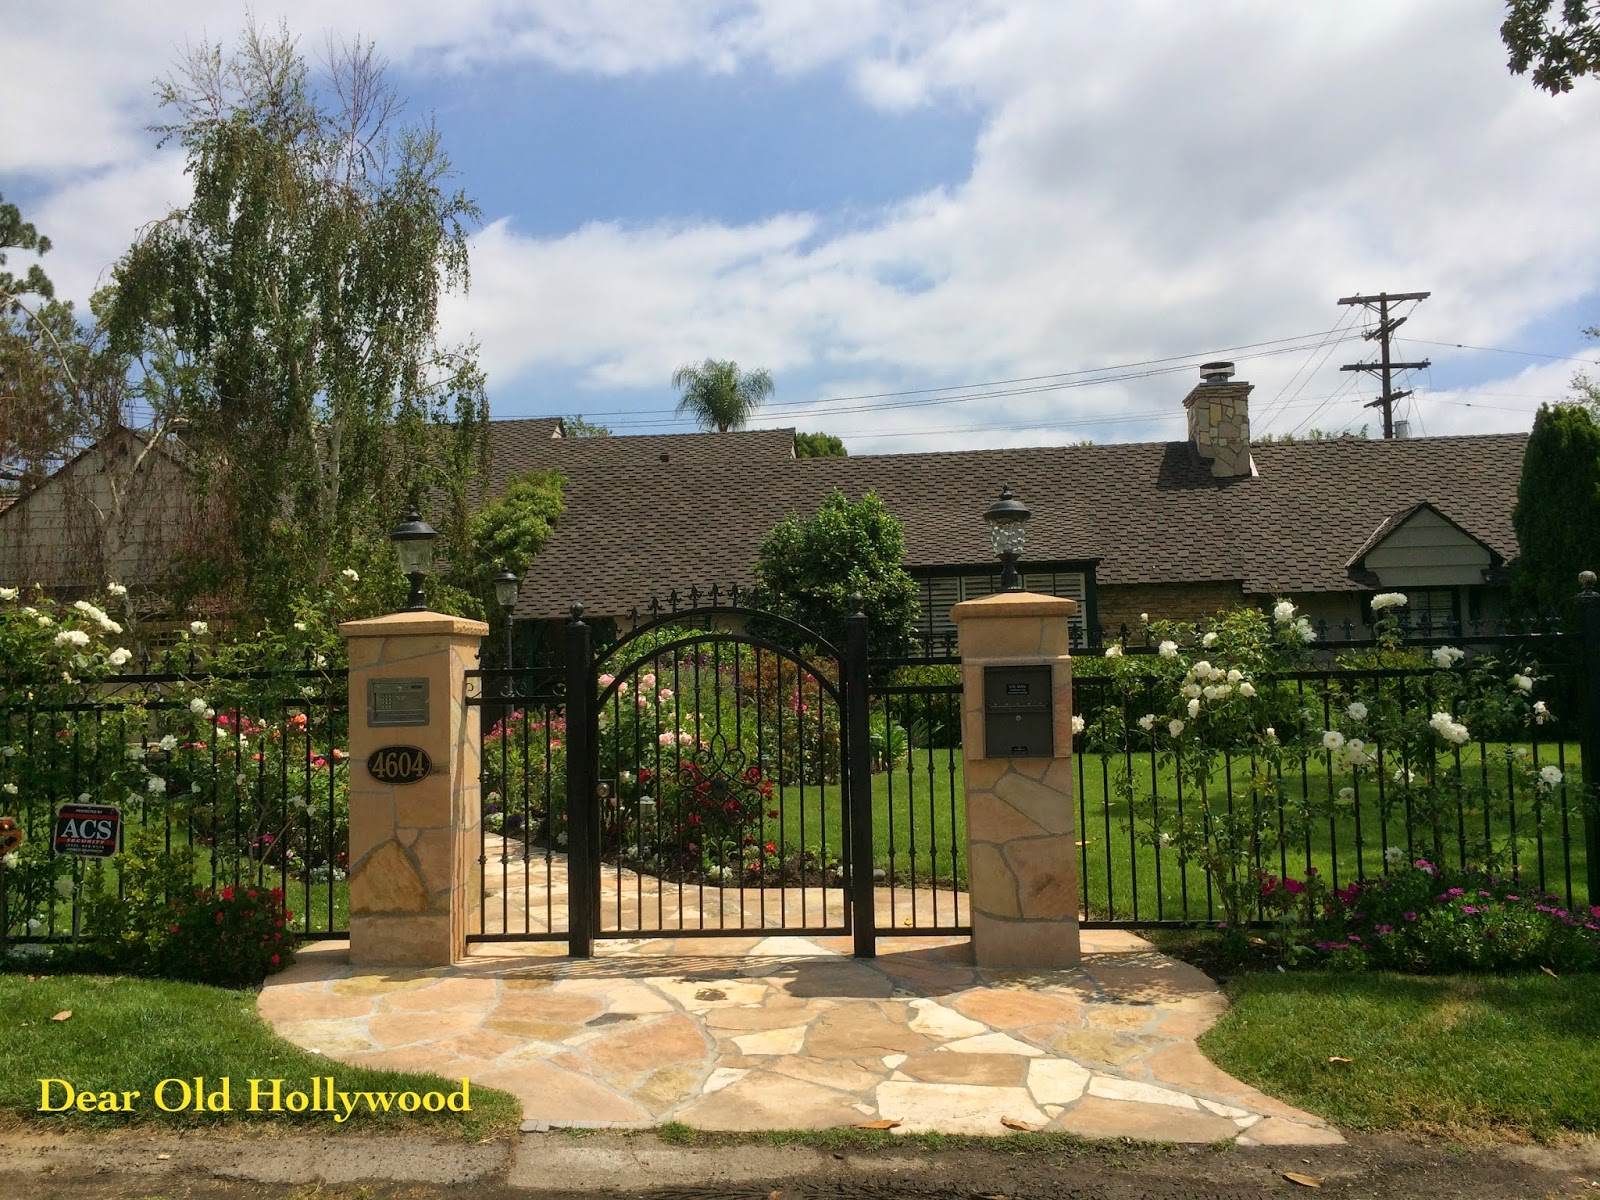 Old Hollywood Homes Dear Old Hollywood The Toluca Lake Homes Of Shemp Howard